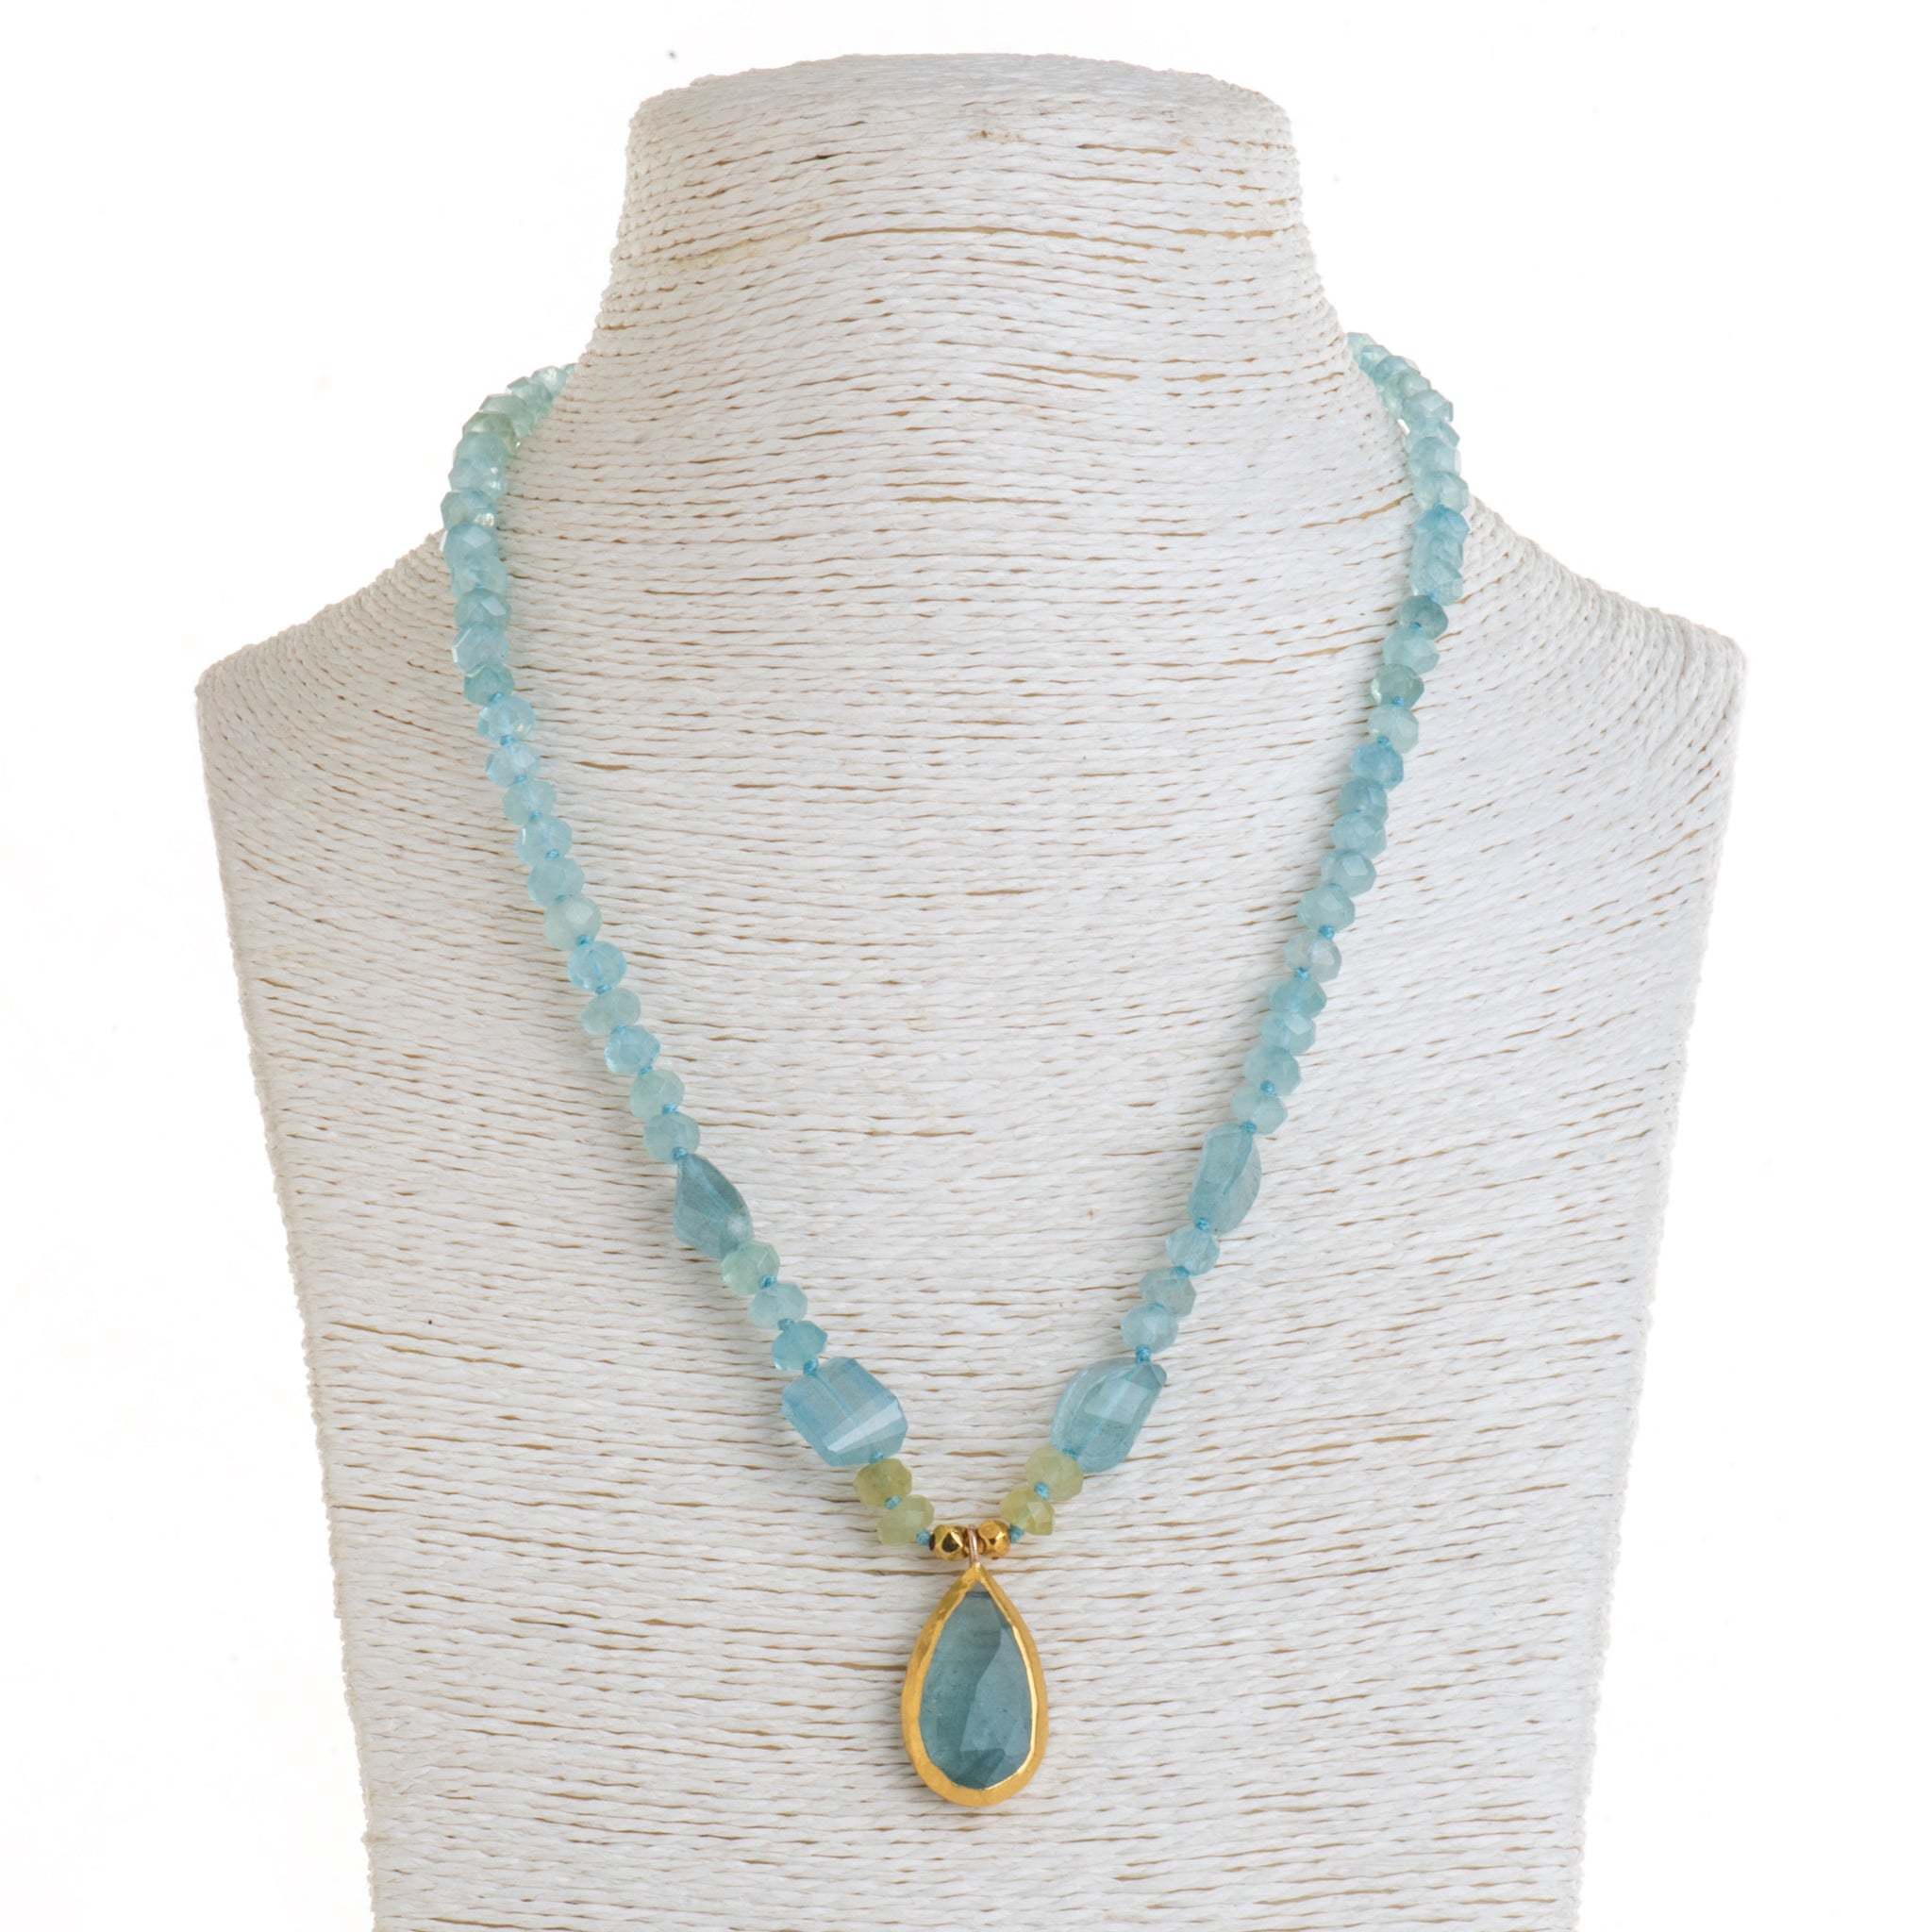 live s for destination promo image aphrodite jewelry mariana the rhapsode mary necklace color in